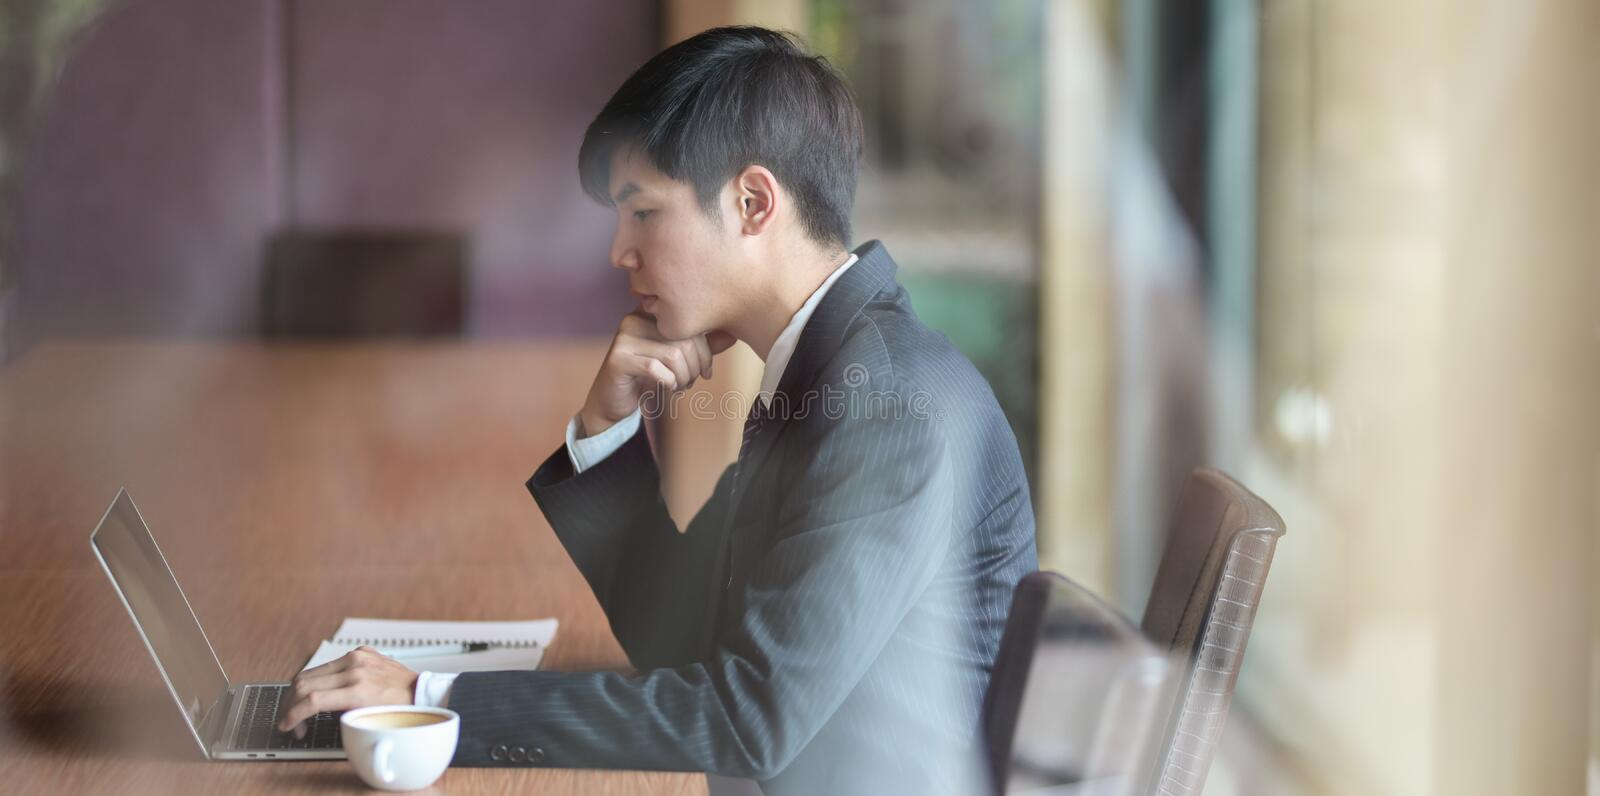 Businessman looking stressful while working on project stock images